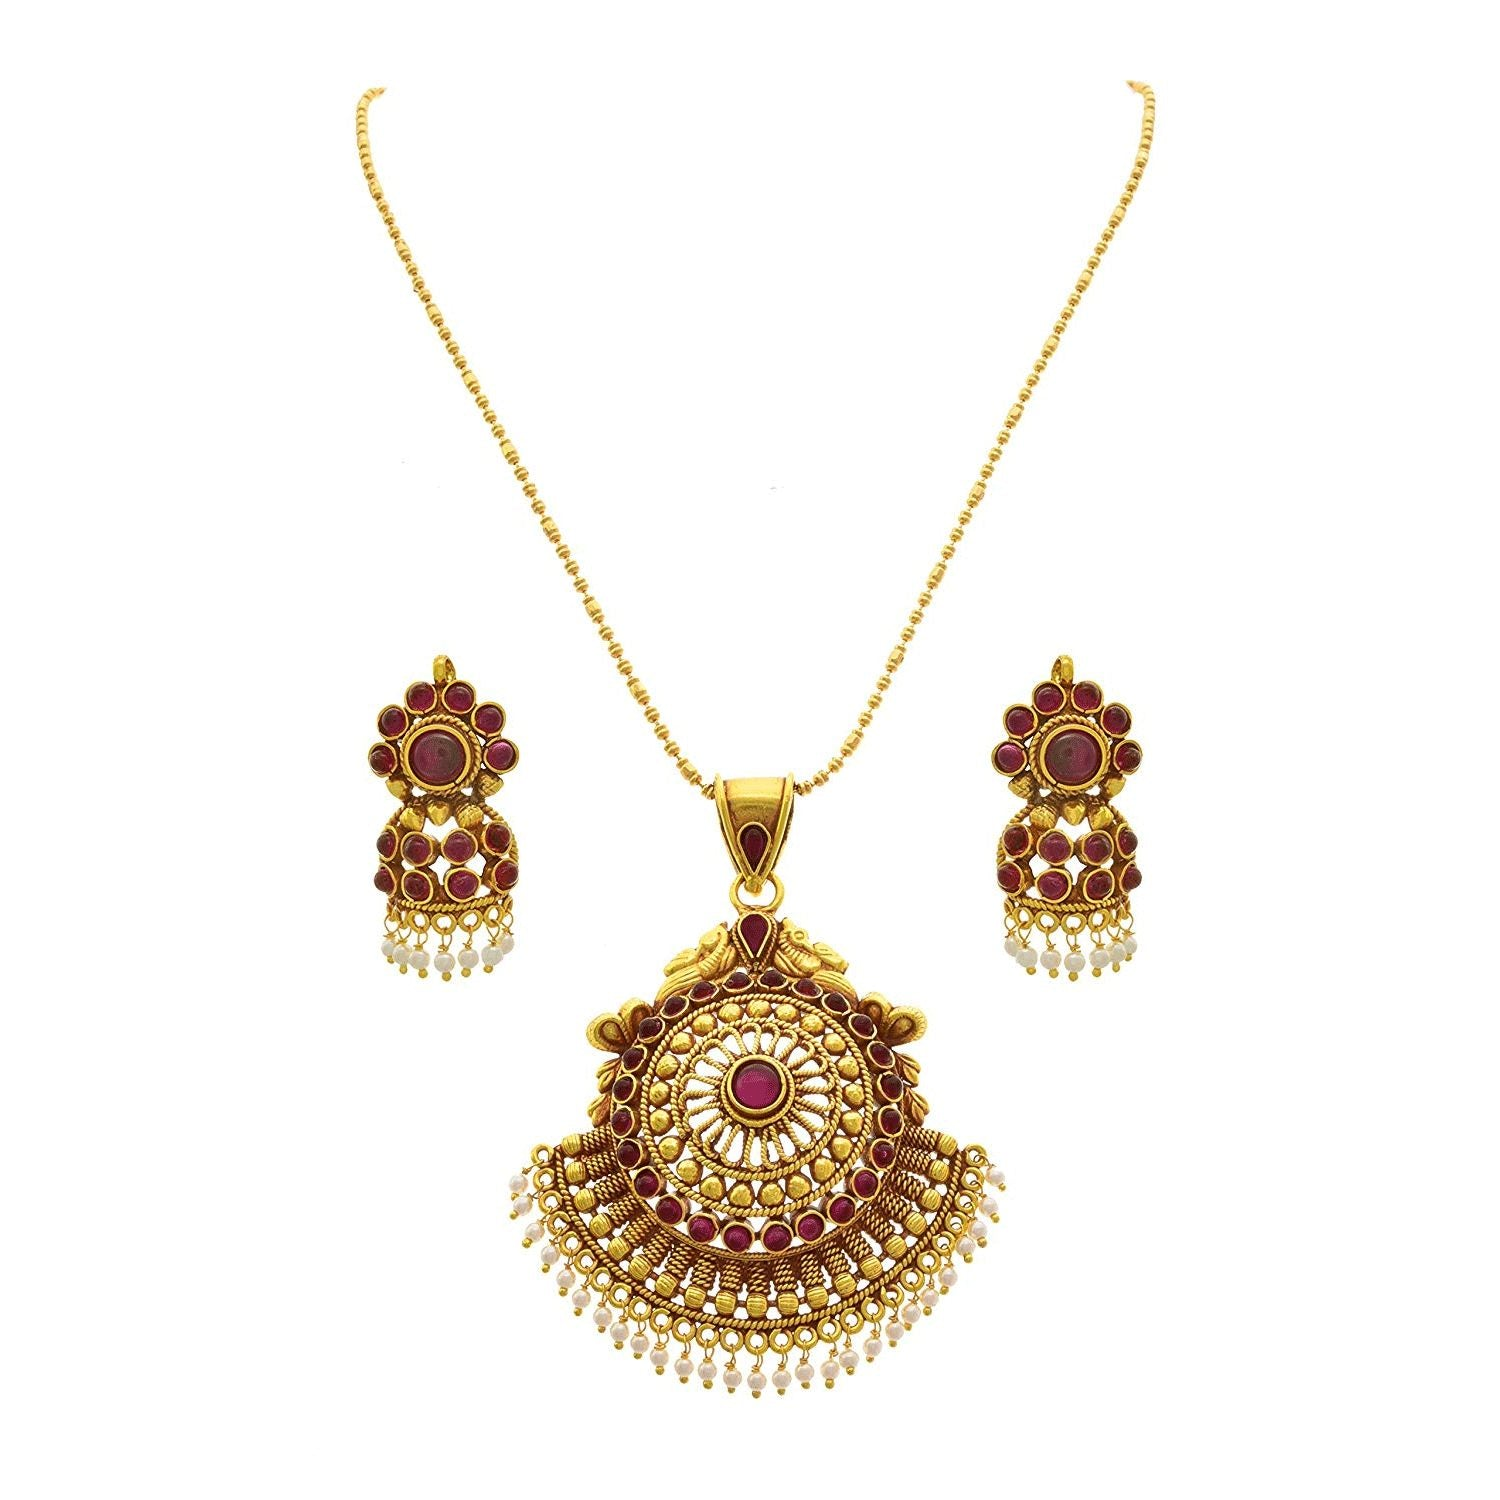 JFL - Traditional Ethnic Temple Floral Dark Pink - Rani/Mergenta One Gram Gold Plated Designer Pendant Set with Chain For Women